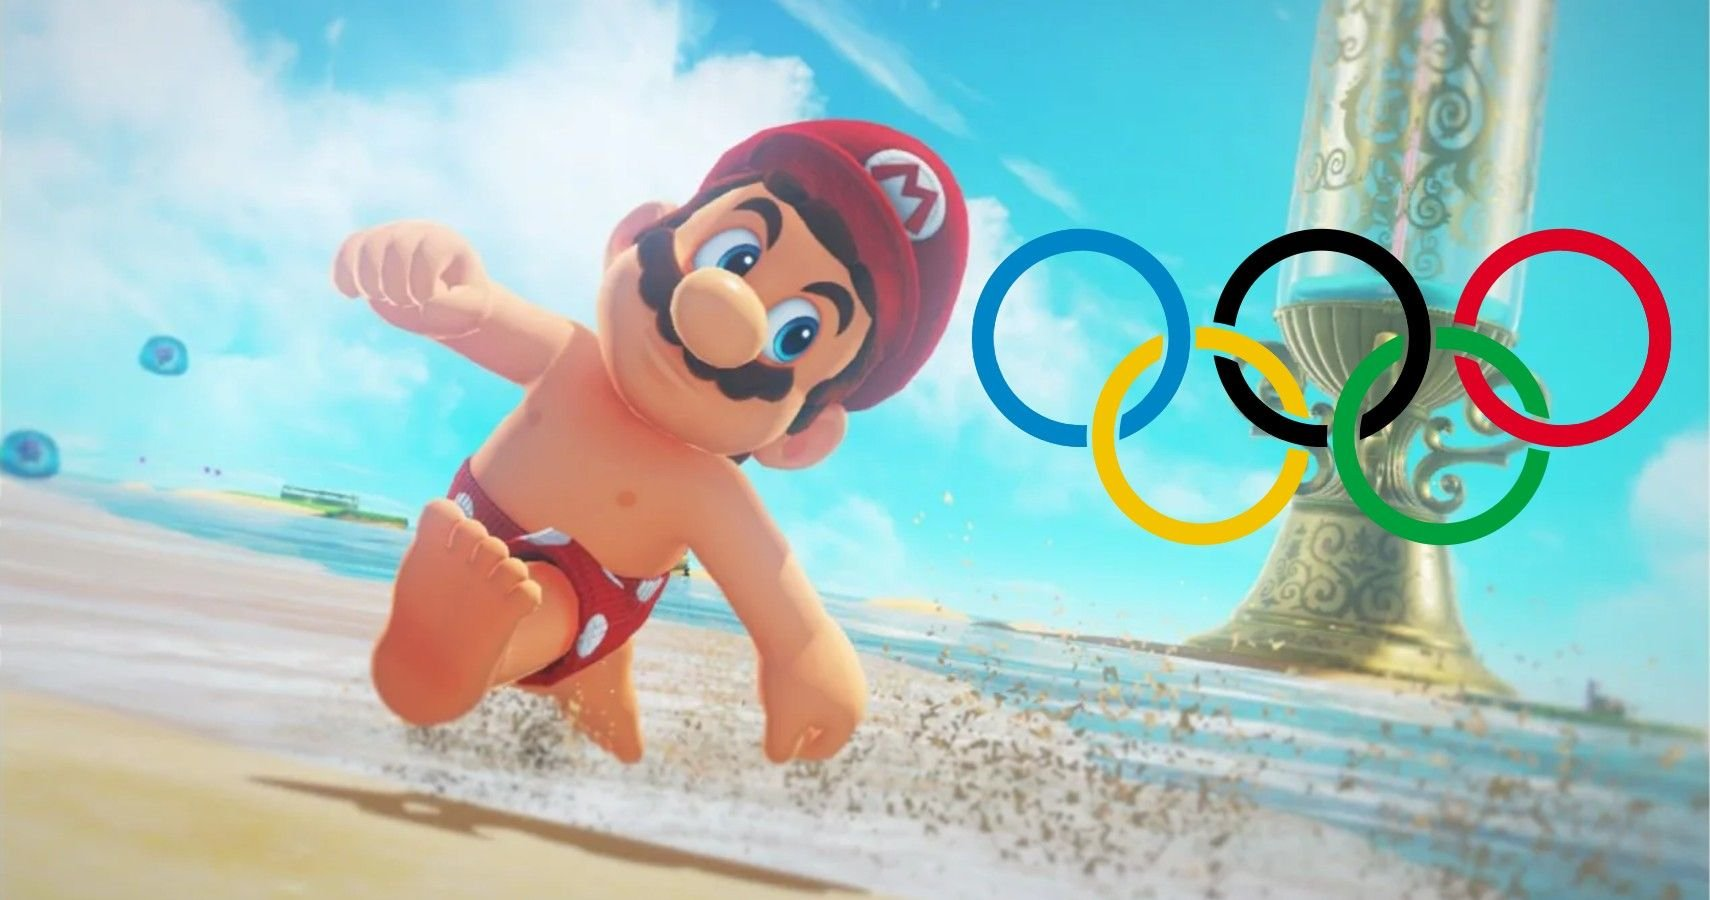 Scrapped Plans For Olympic Opening Ceremony Include 8-Bit Bathing Suit Mario